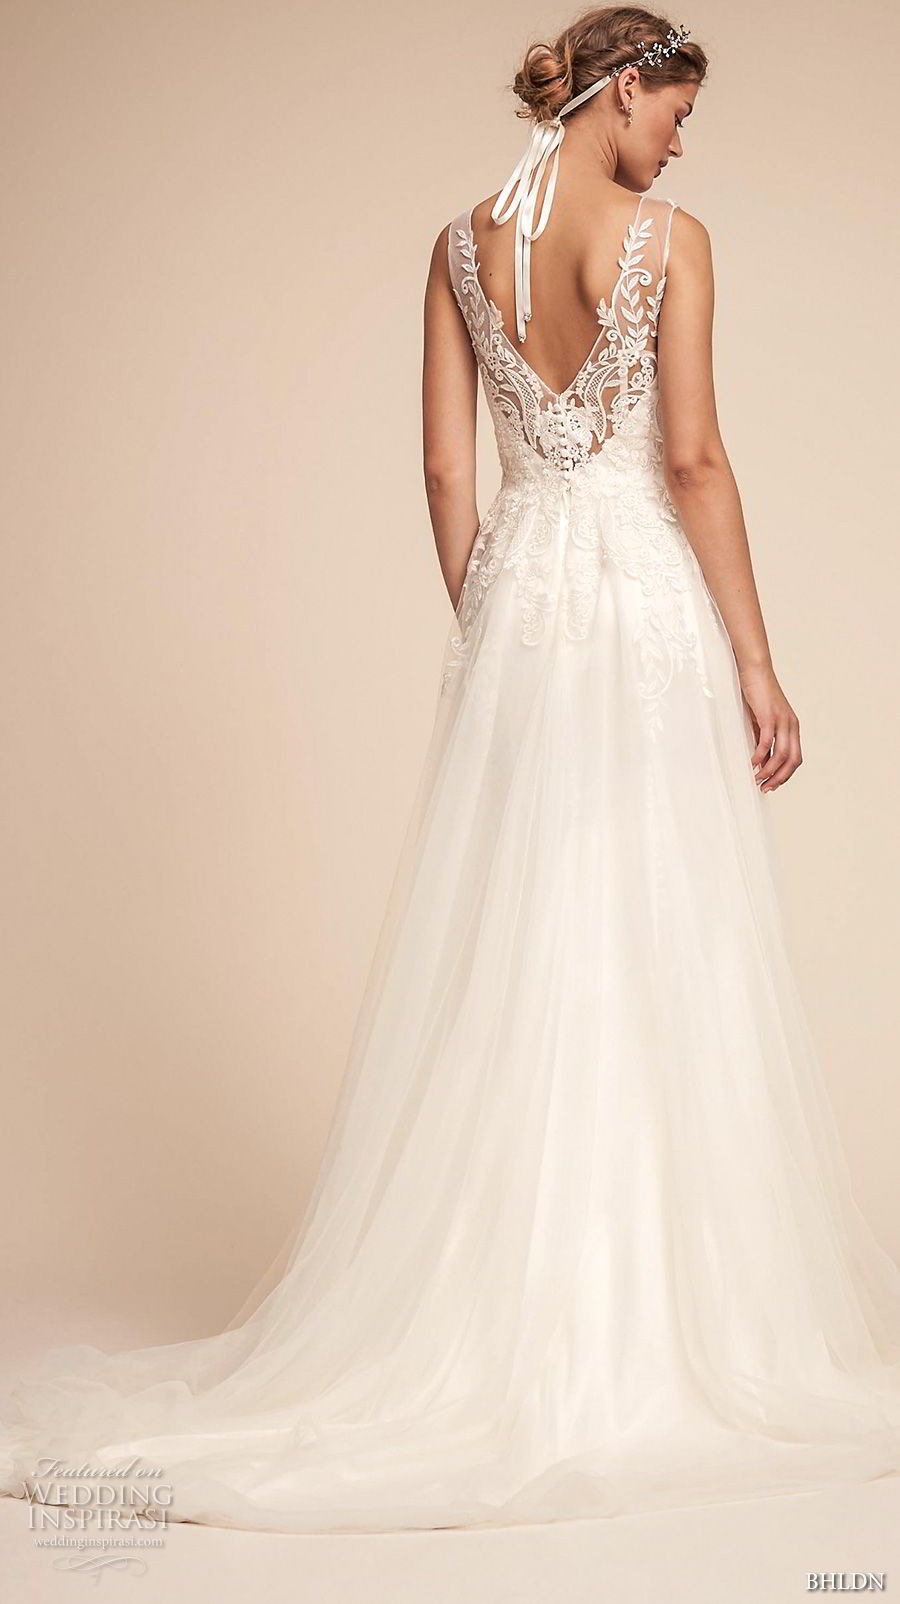 bhldn spring 2018 bridal sleeveless illusion v sweetheart neckline heavily embellished bodice tulle skirt romantic soft a  line wedding dress open v back medium train (4) bv